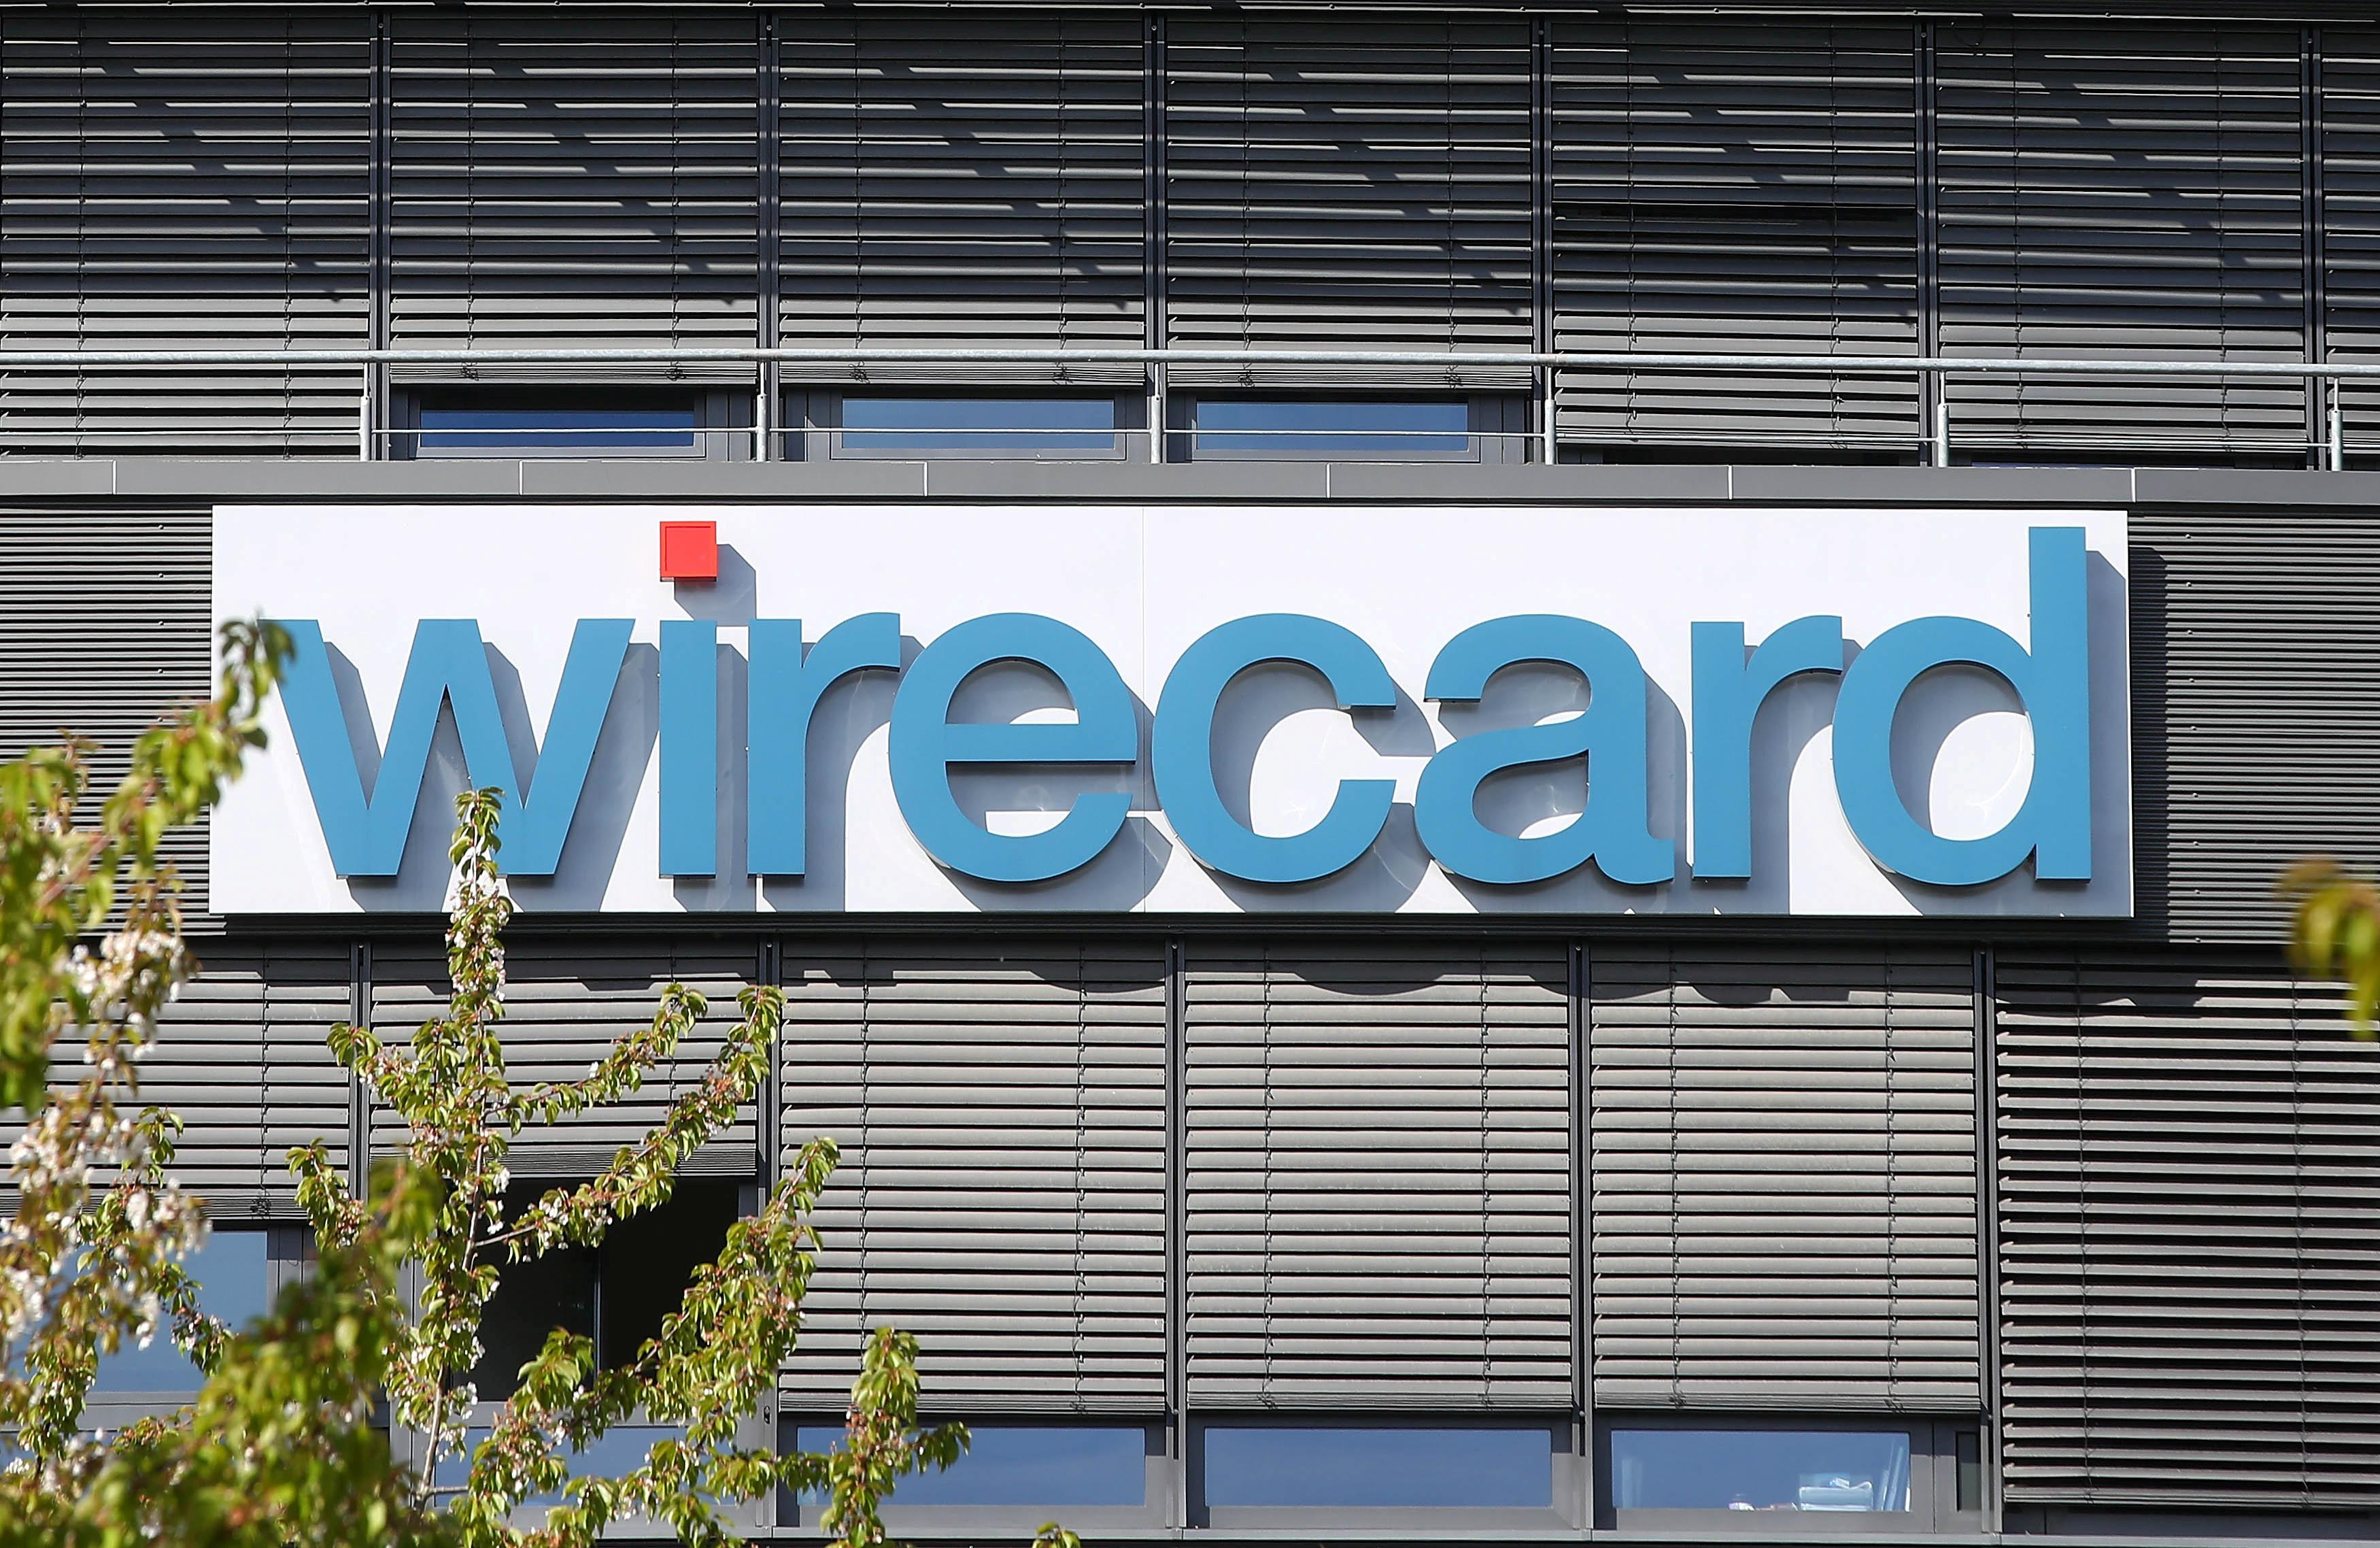 Exclusive: Germany missed chances to put Wirecard on watchlist, source says